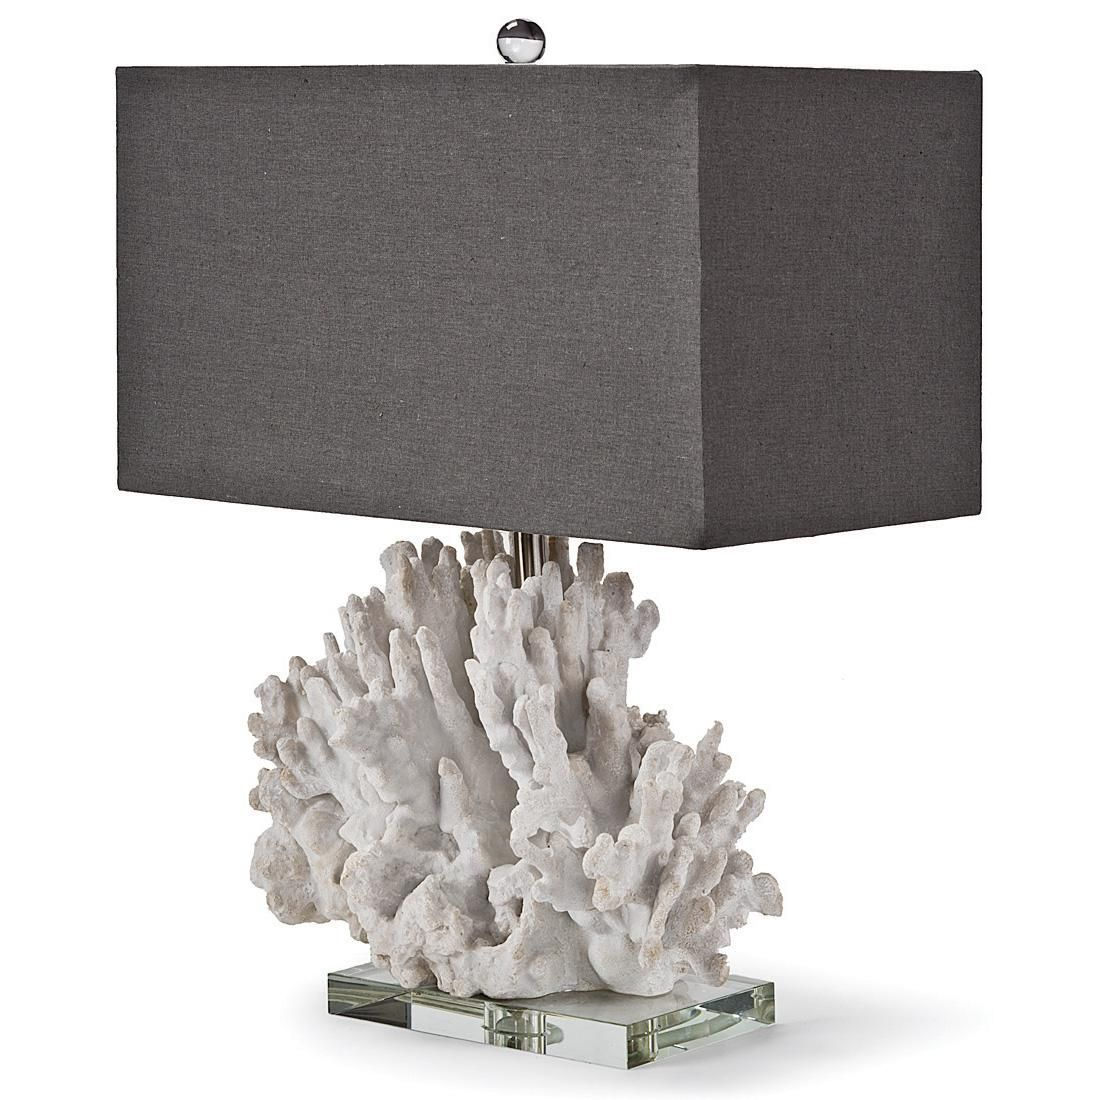 Attirant Monterey Coastal Beach Charcoal White Coral Table Lamp   Beach Style   Table  Lamps   Kathy Kuo Home